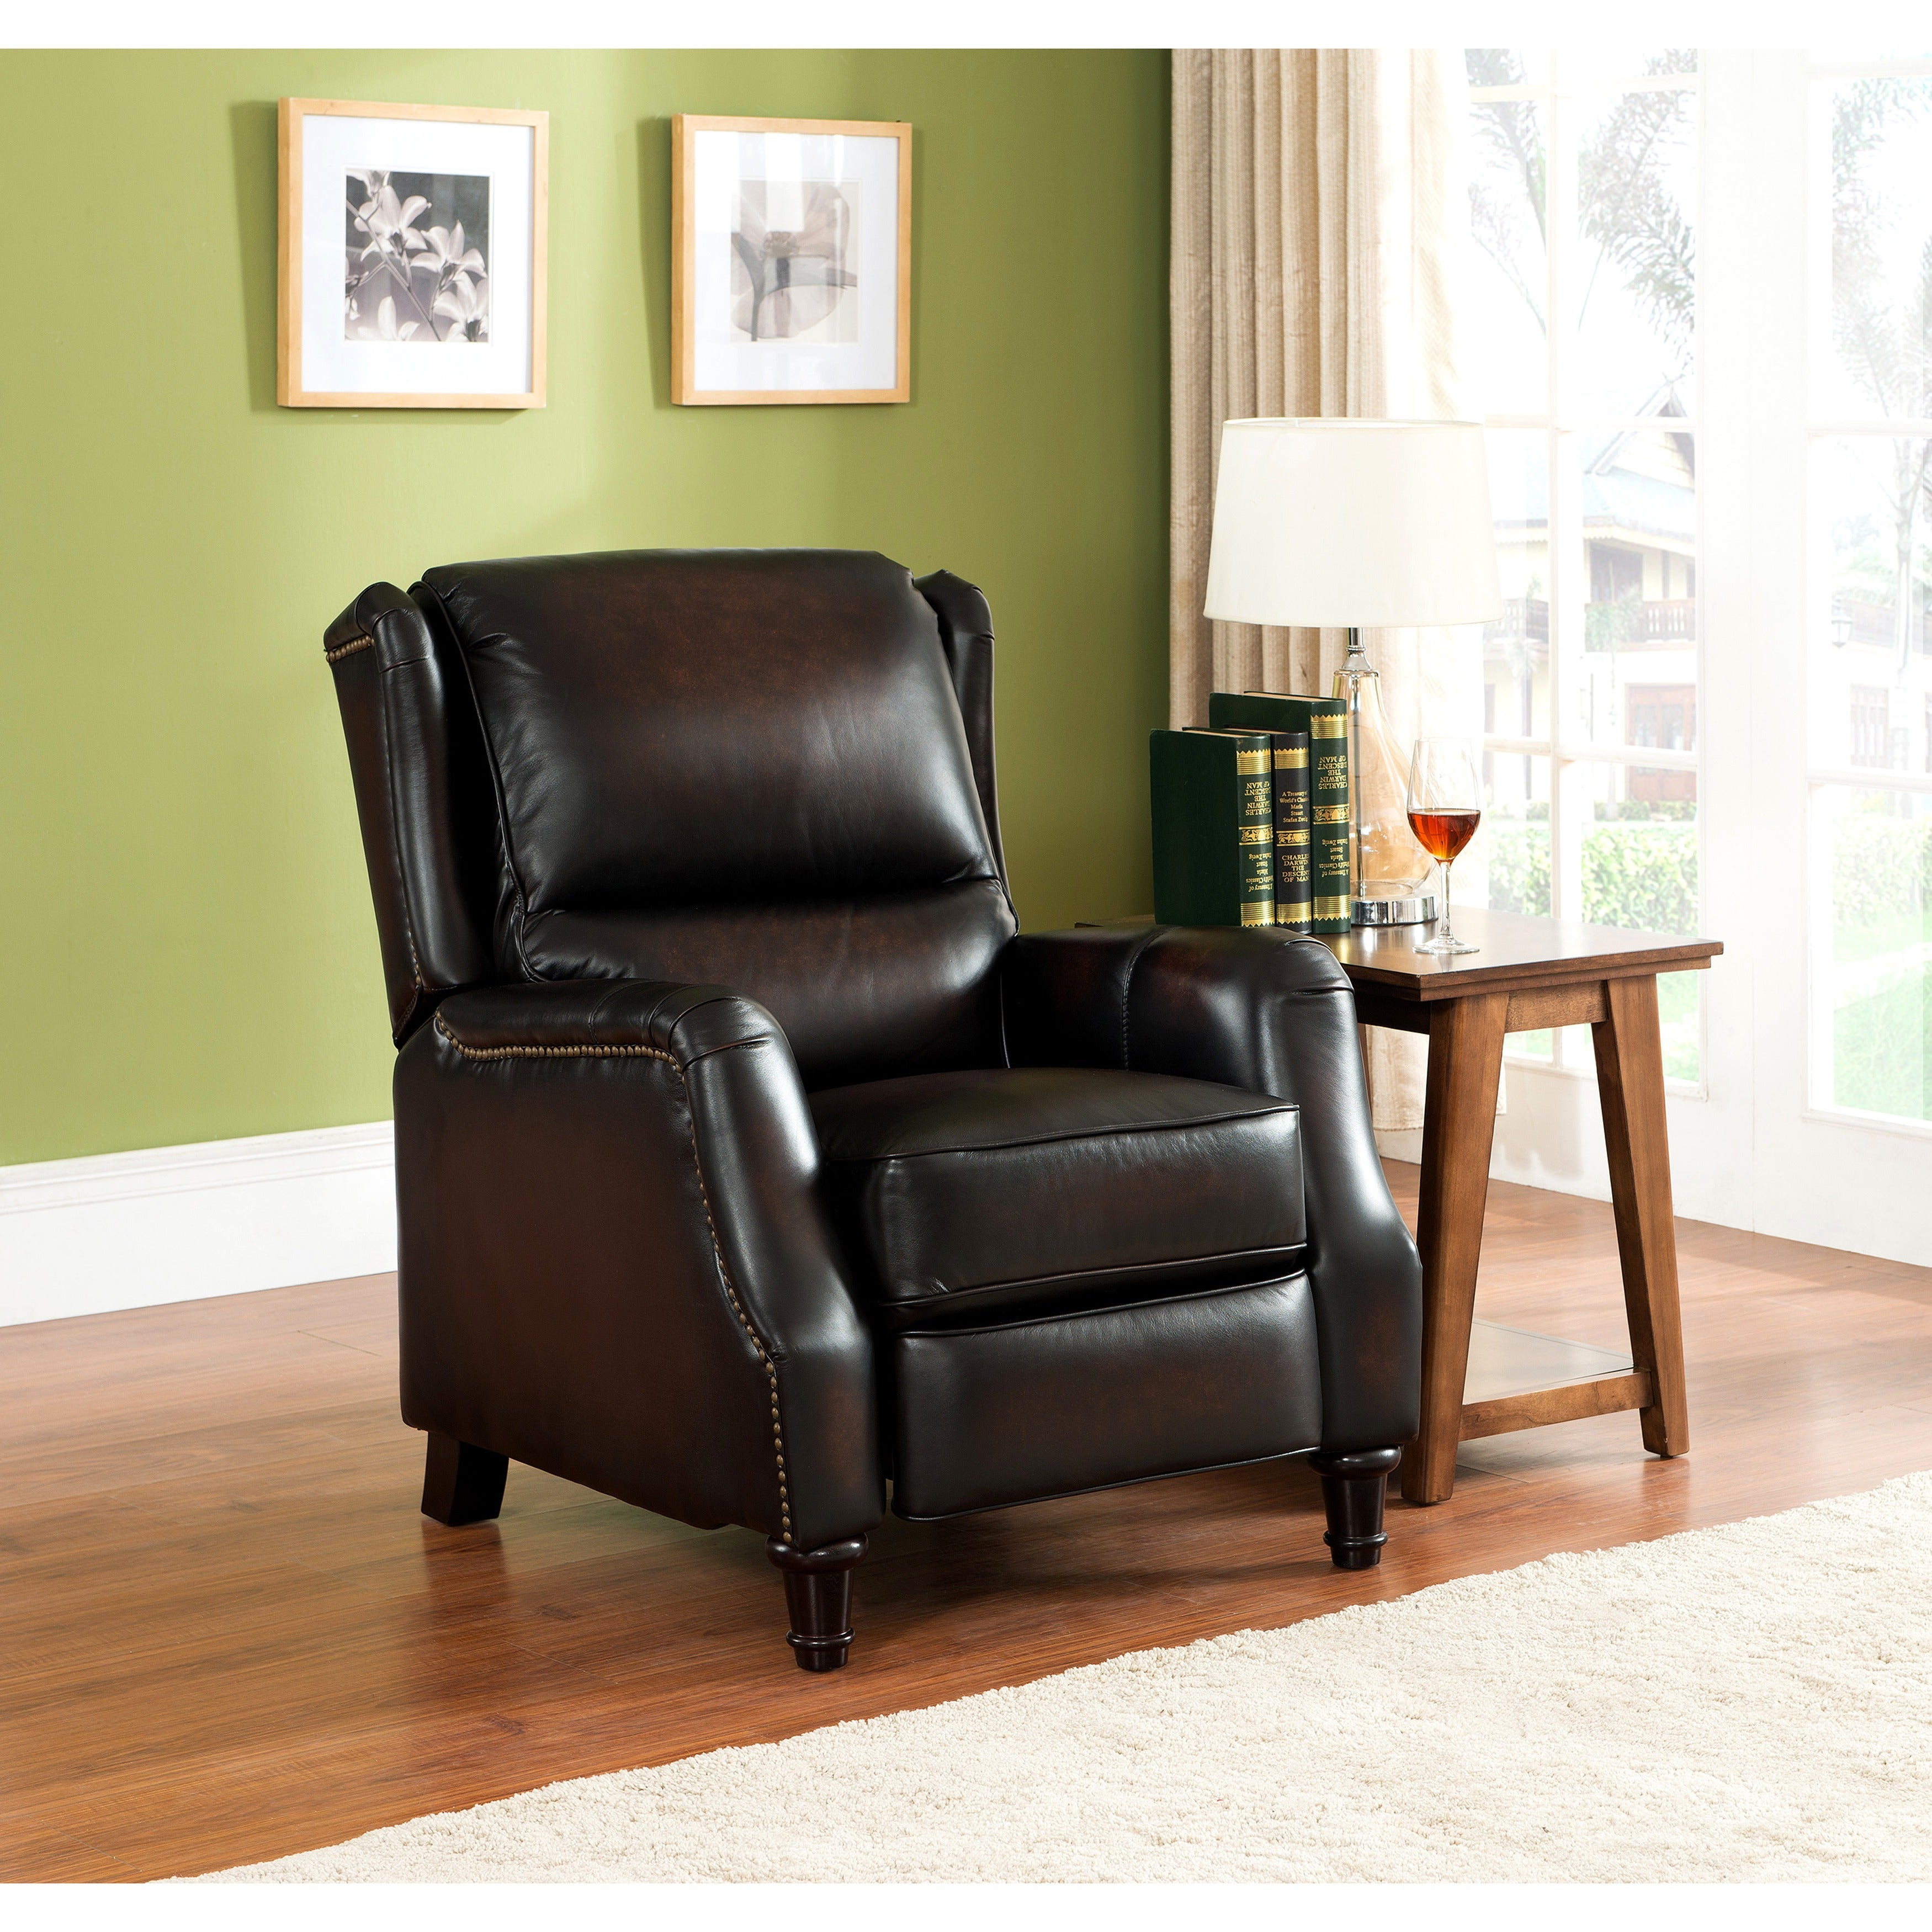 deluxe ip chair en recliner leather pu padded